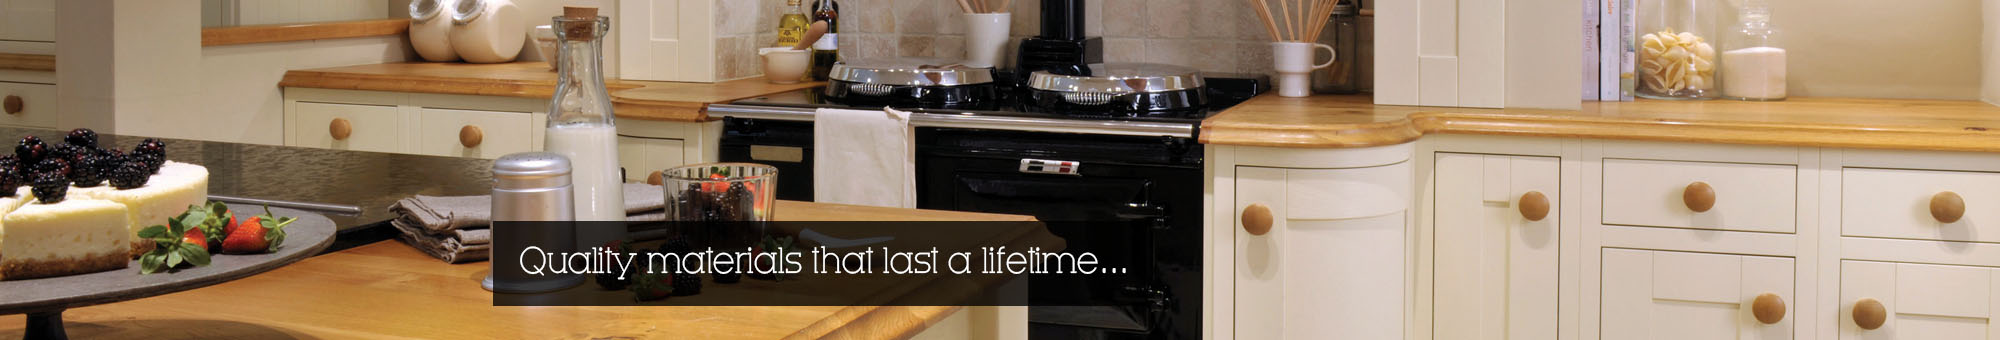 Countrywide Homes Kitchens